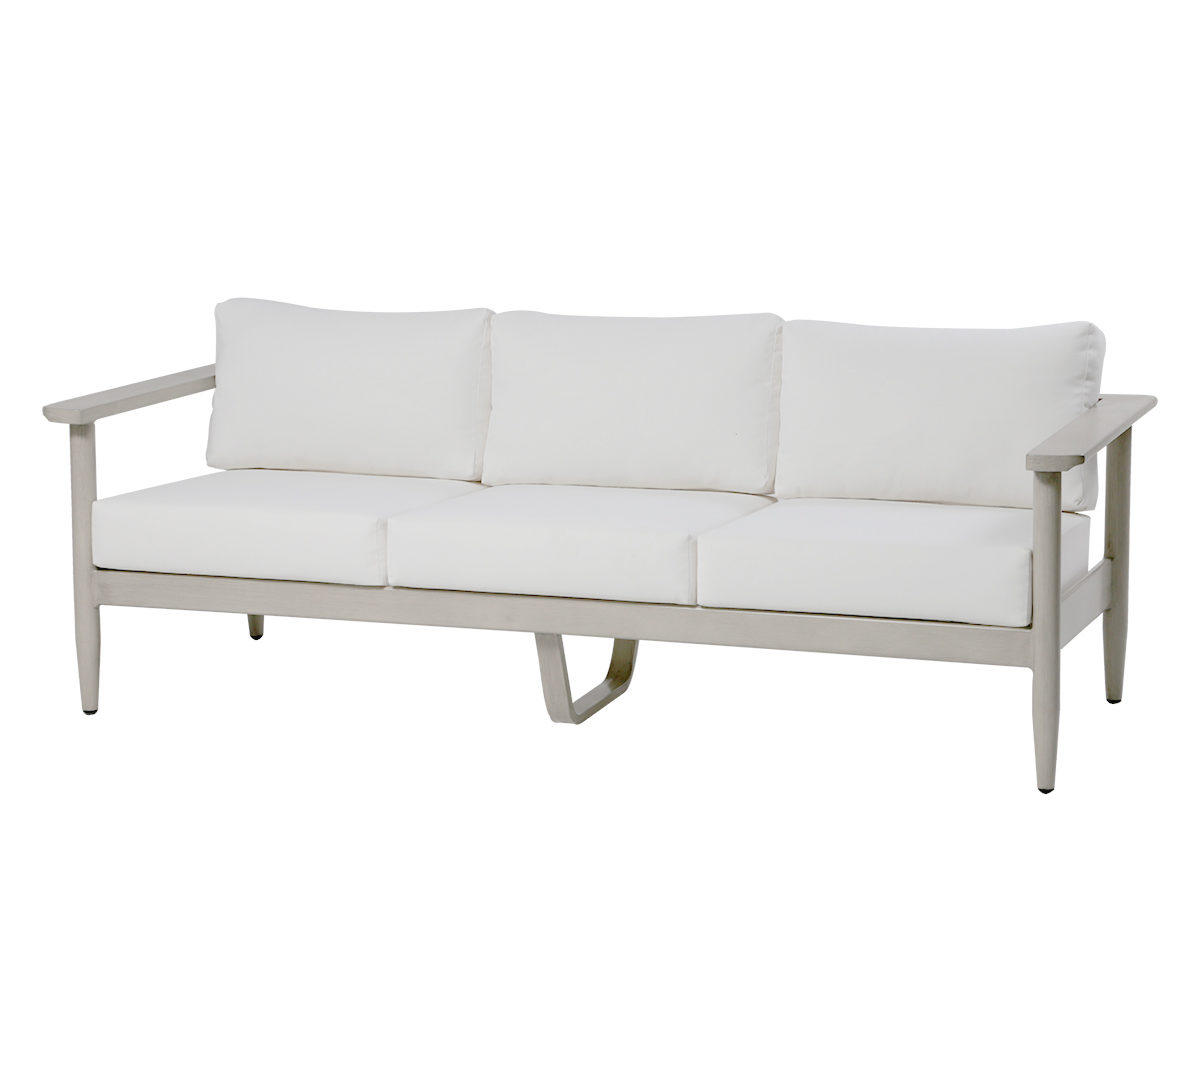 Polanco Sofa Ratana | Patio Bay